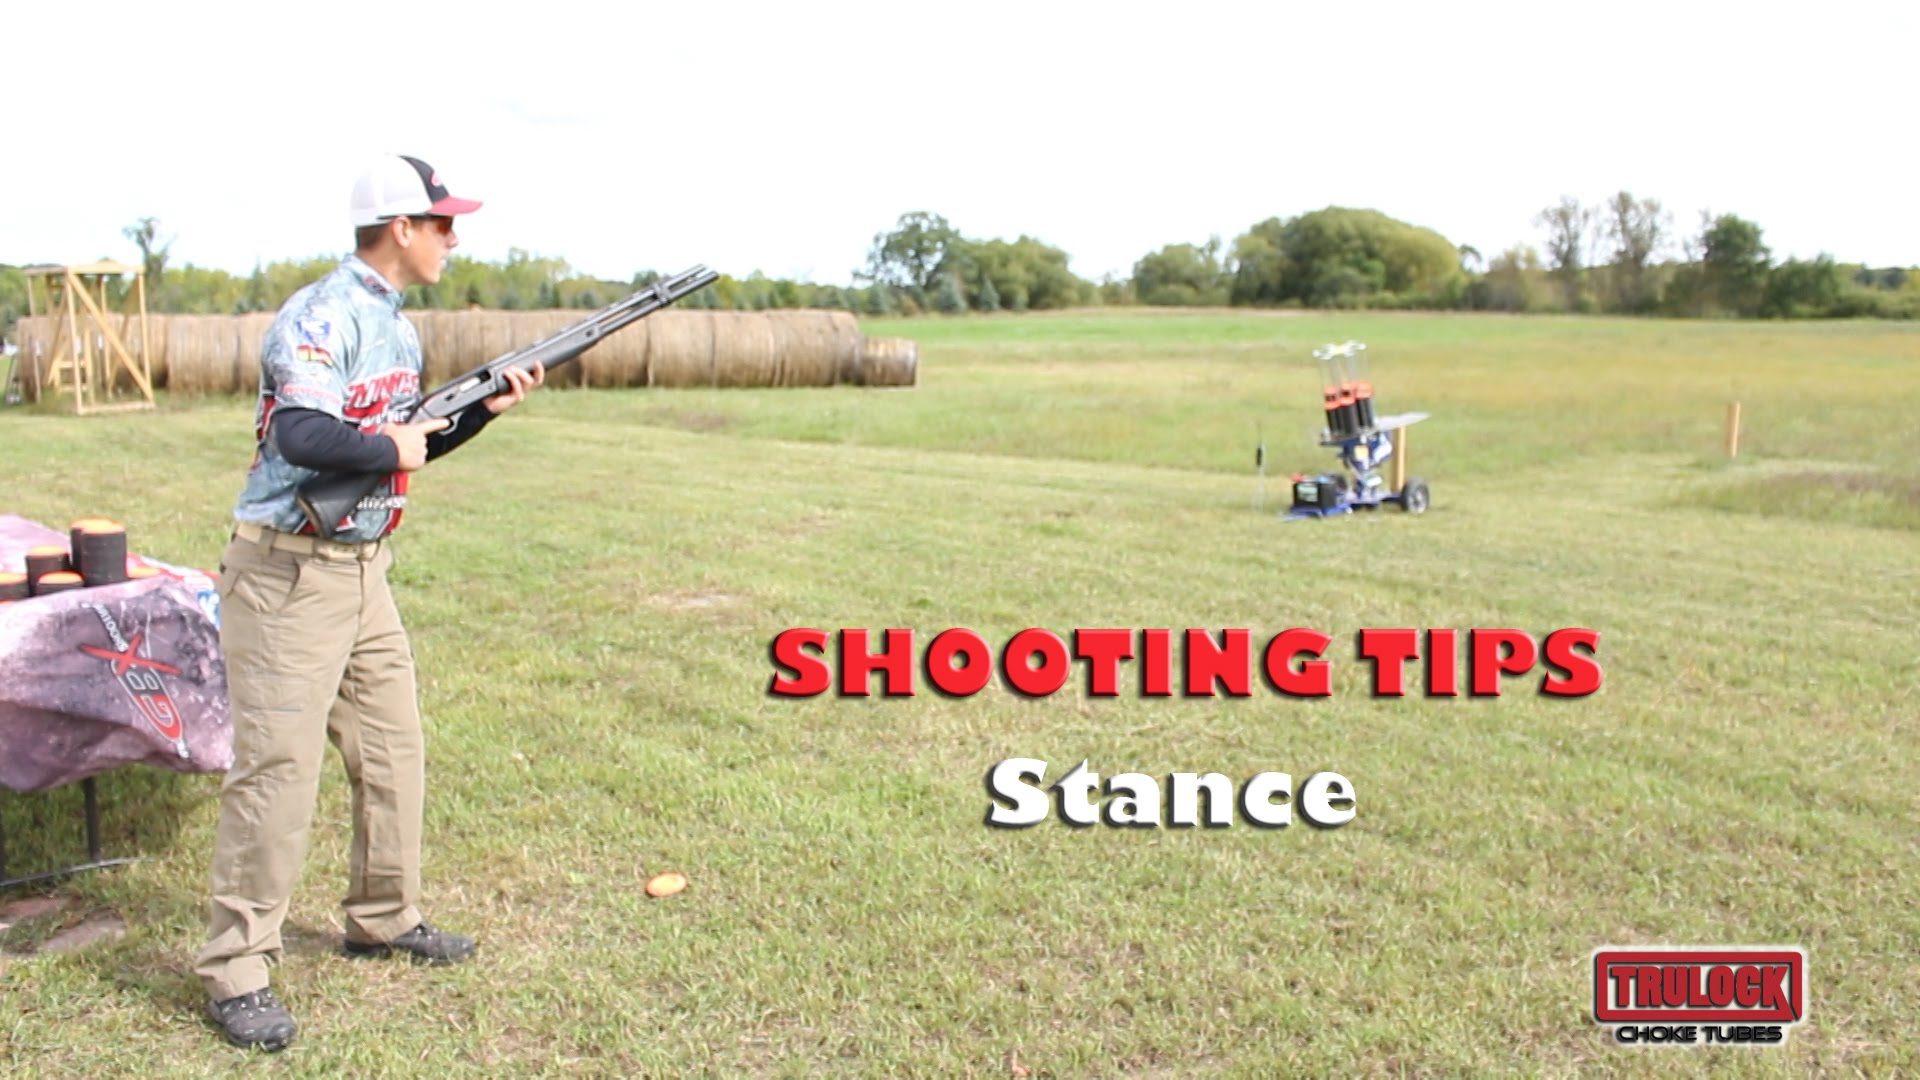 Tips for Better Wing & Clay Shooting - Stance